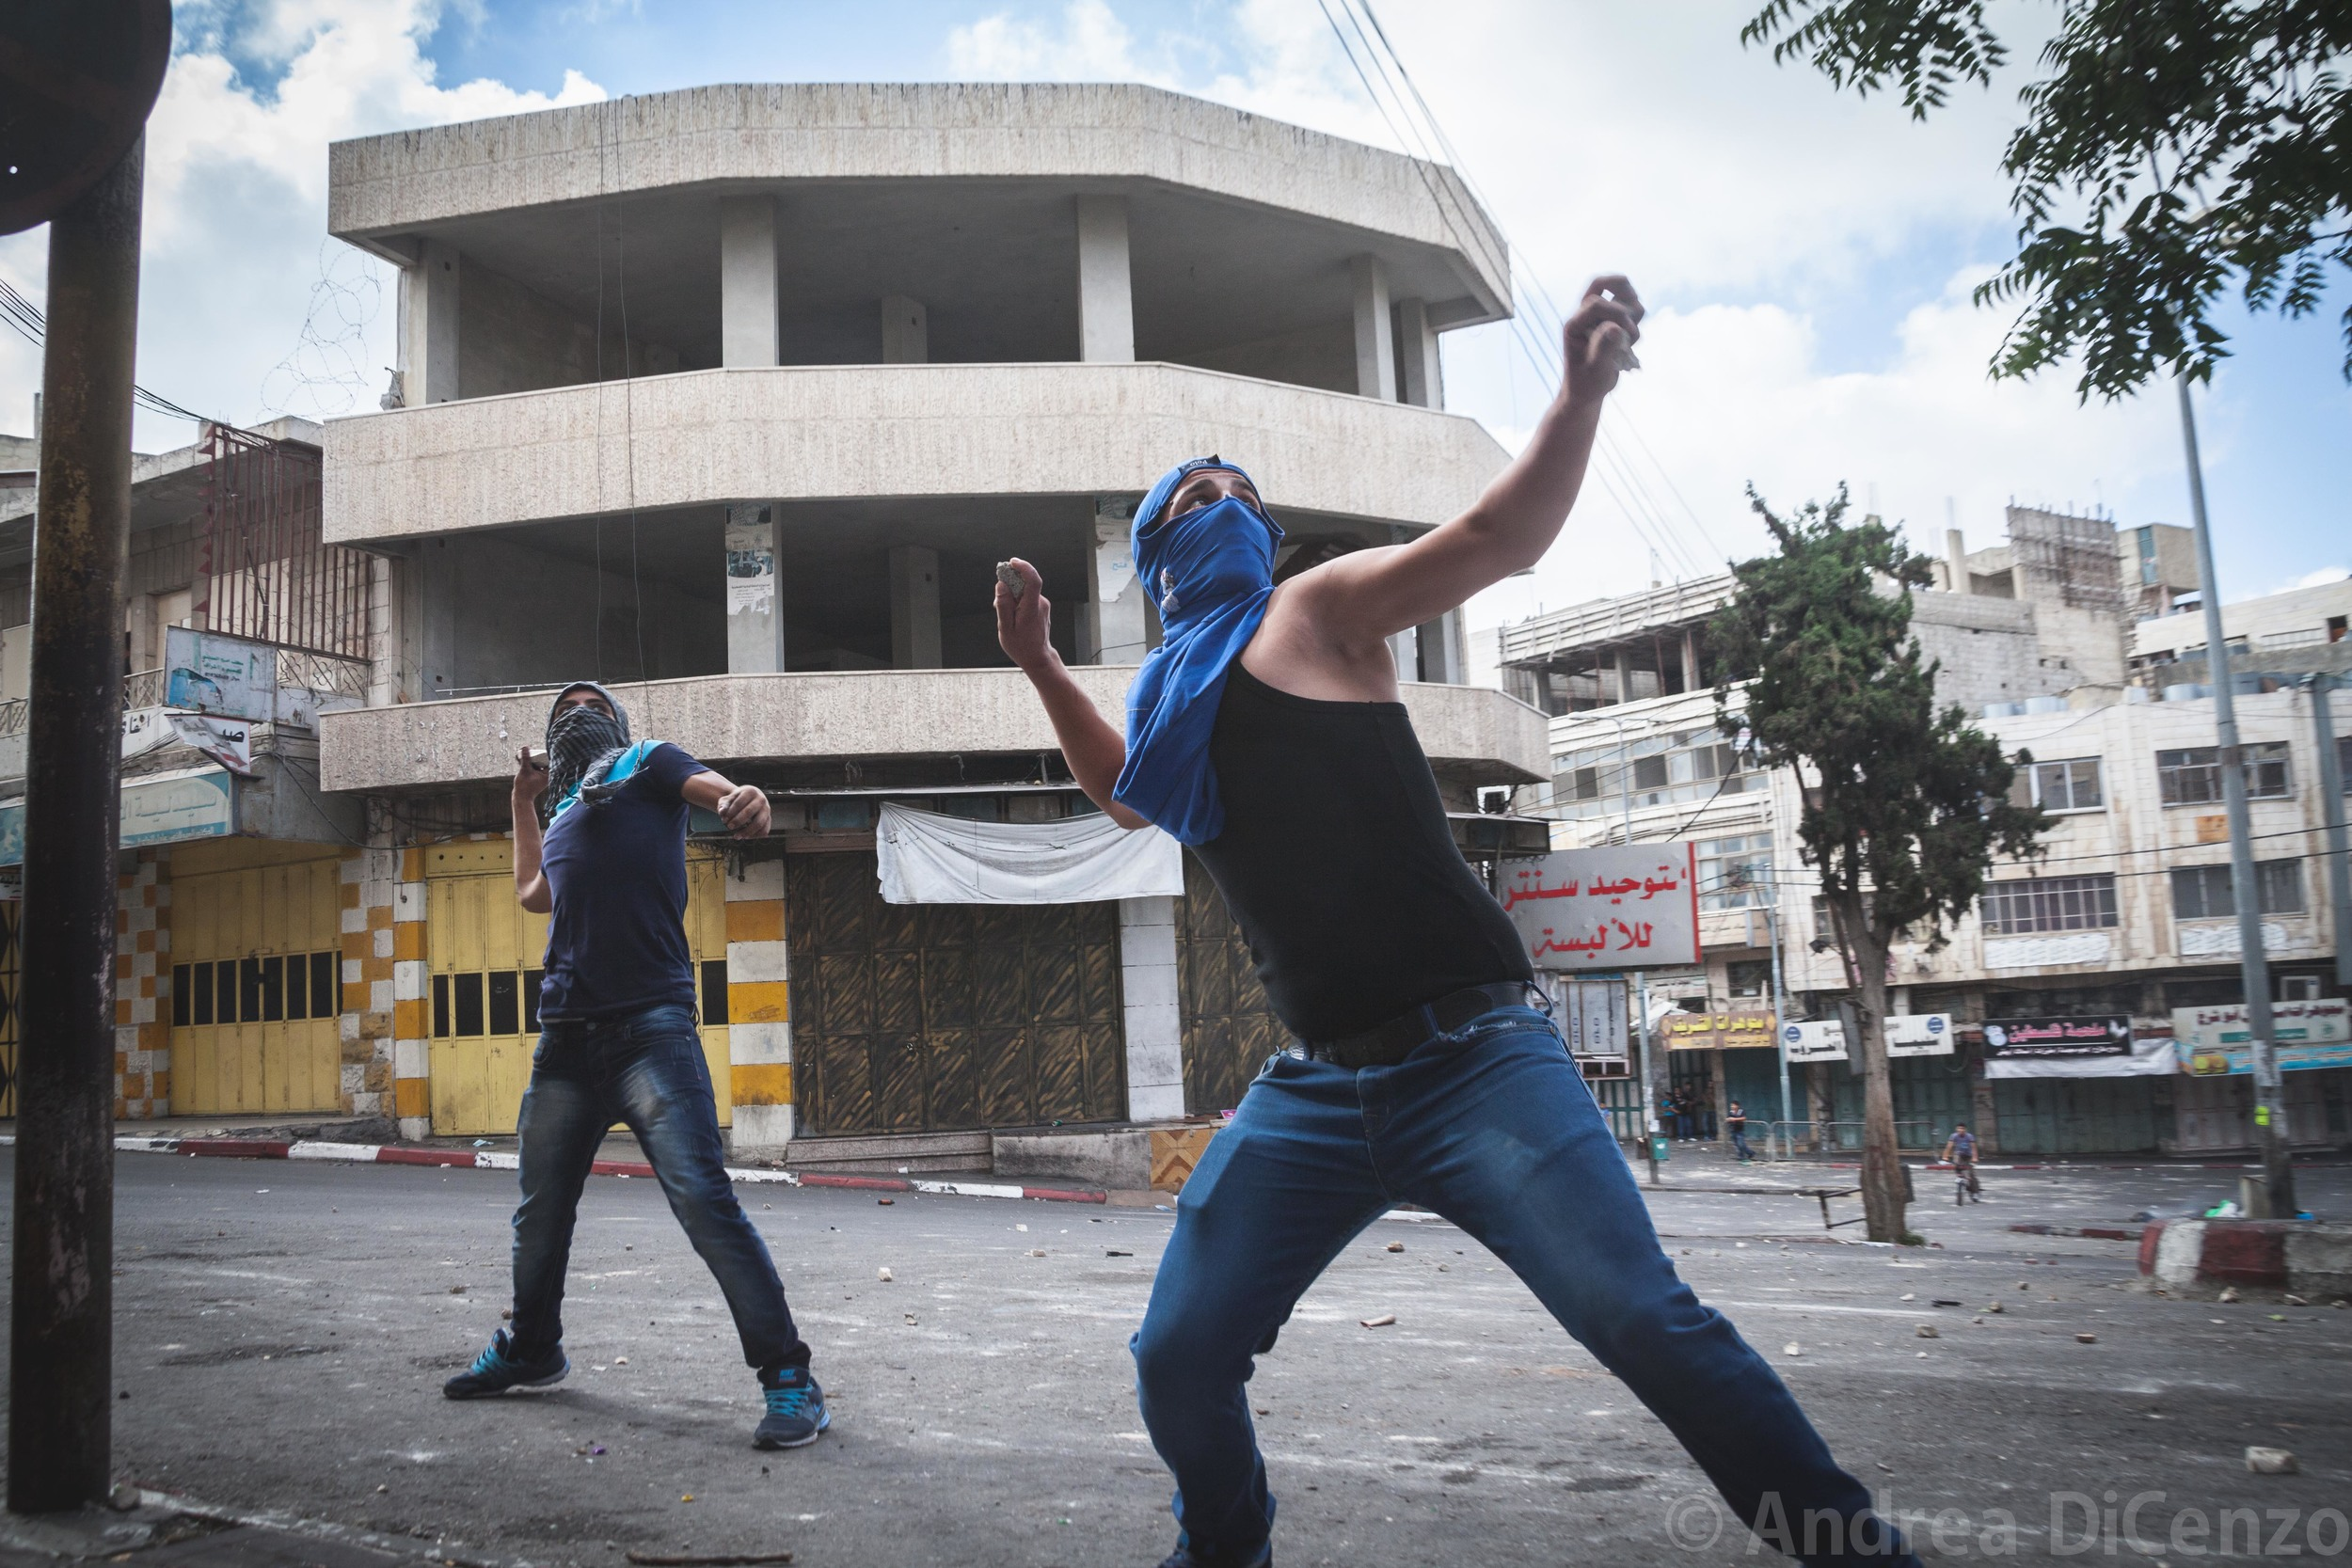 Young men throw rocks at the Israeli Defense Forces in a violent clash in Hebron, West Bank.